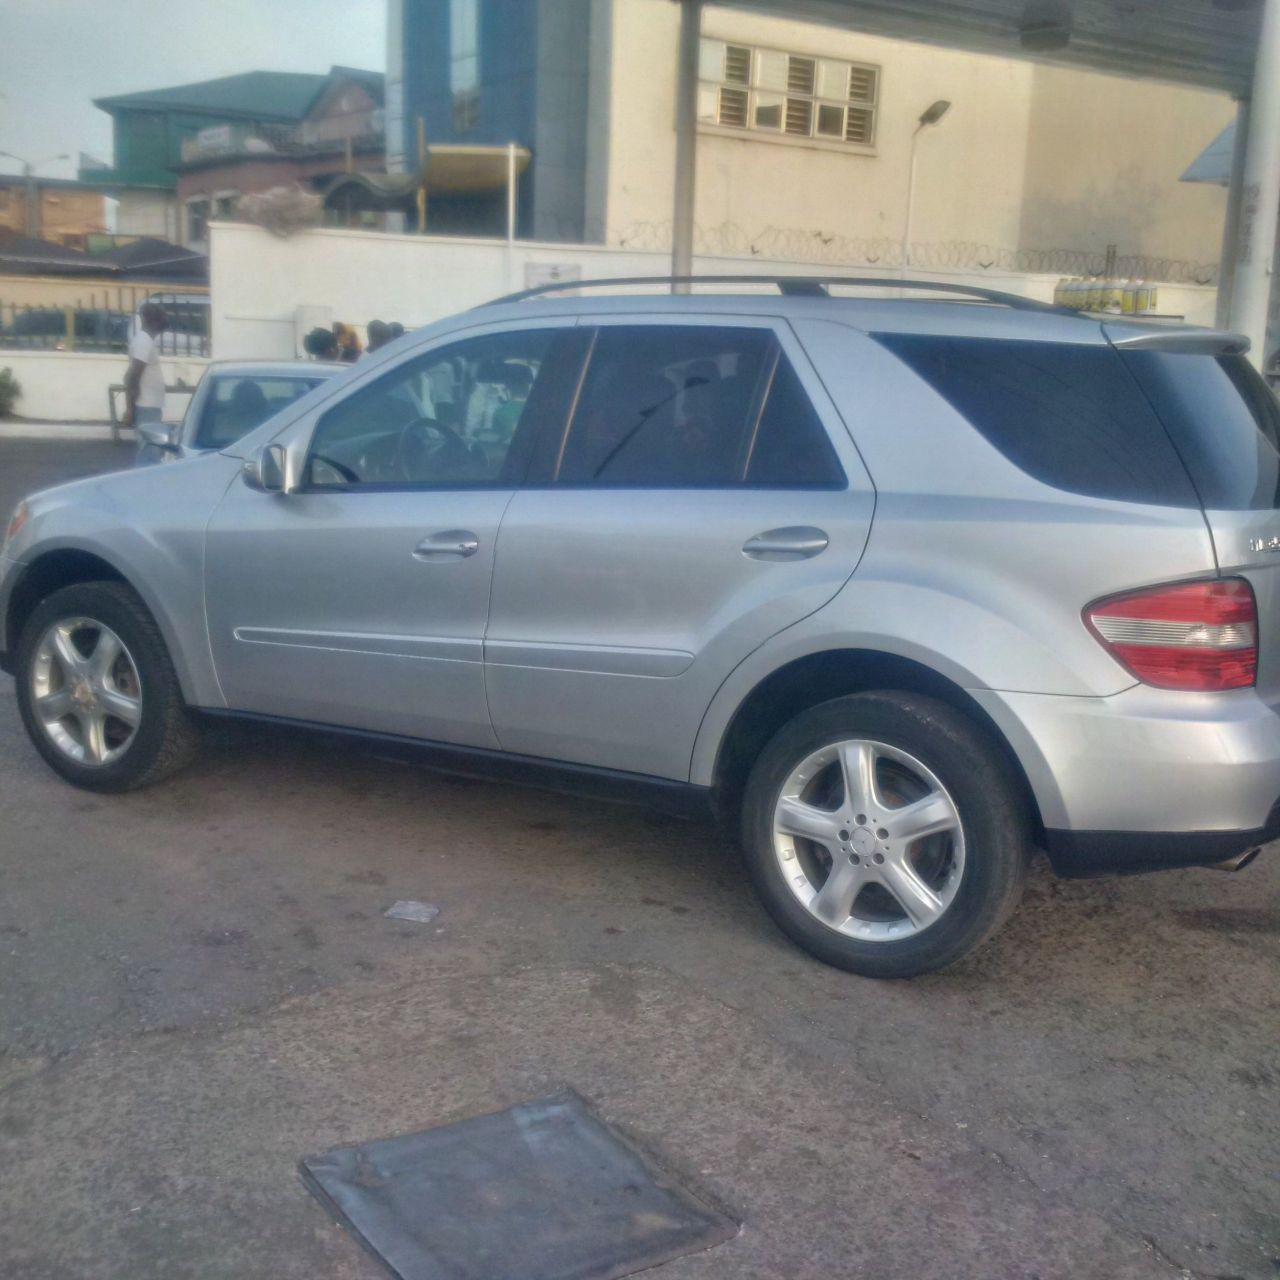 2007 tokunbo mercedes benz ml350 4matic autos nigeria for 2007 mercedes benz ml350 4matic